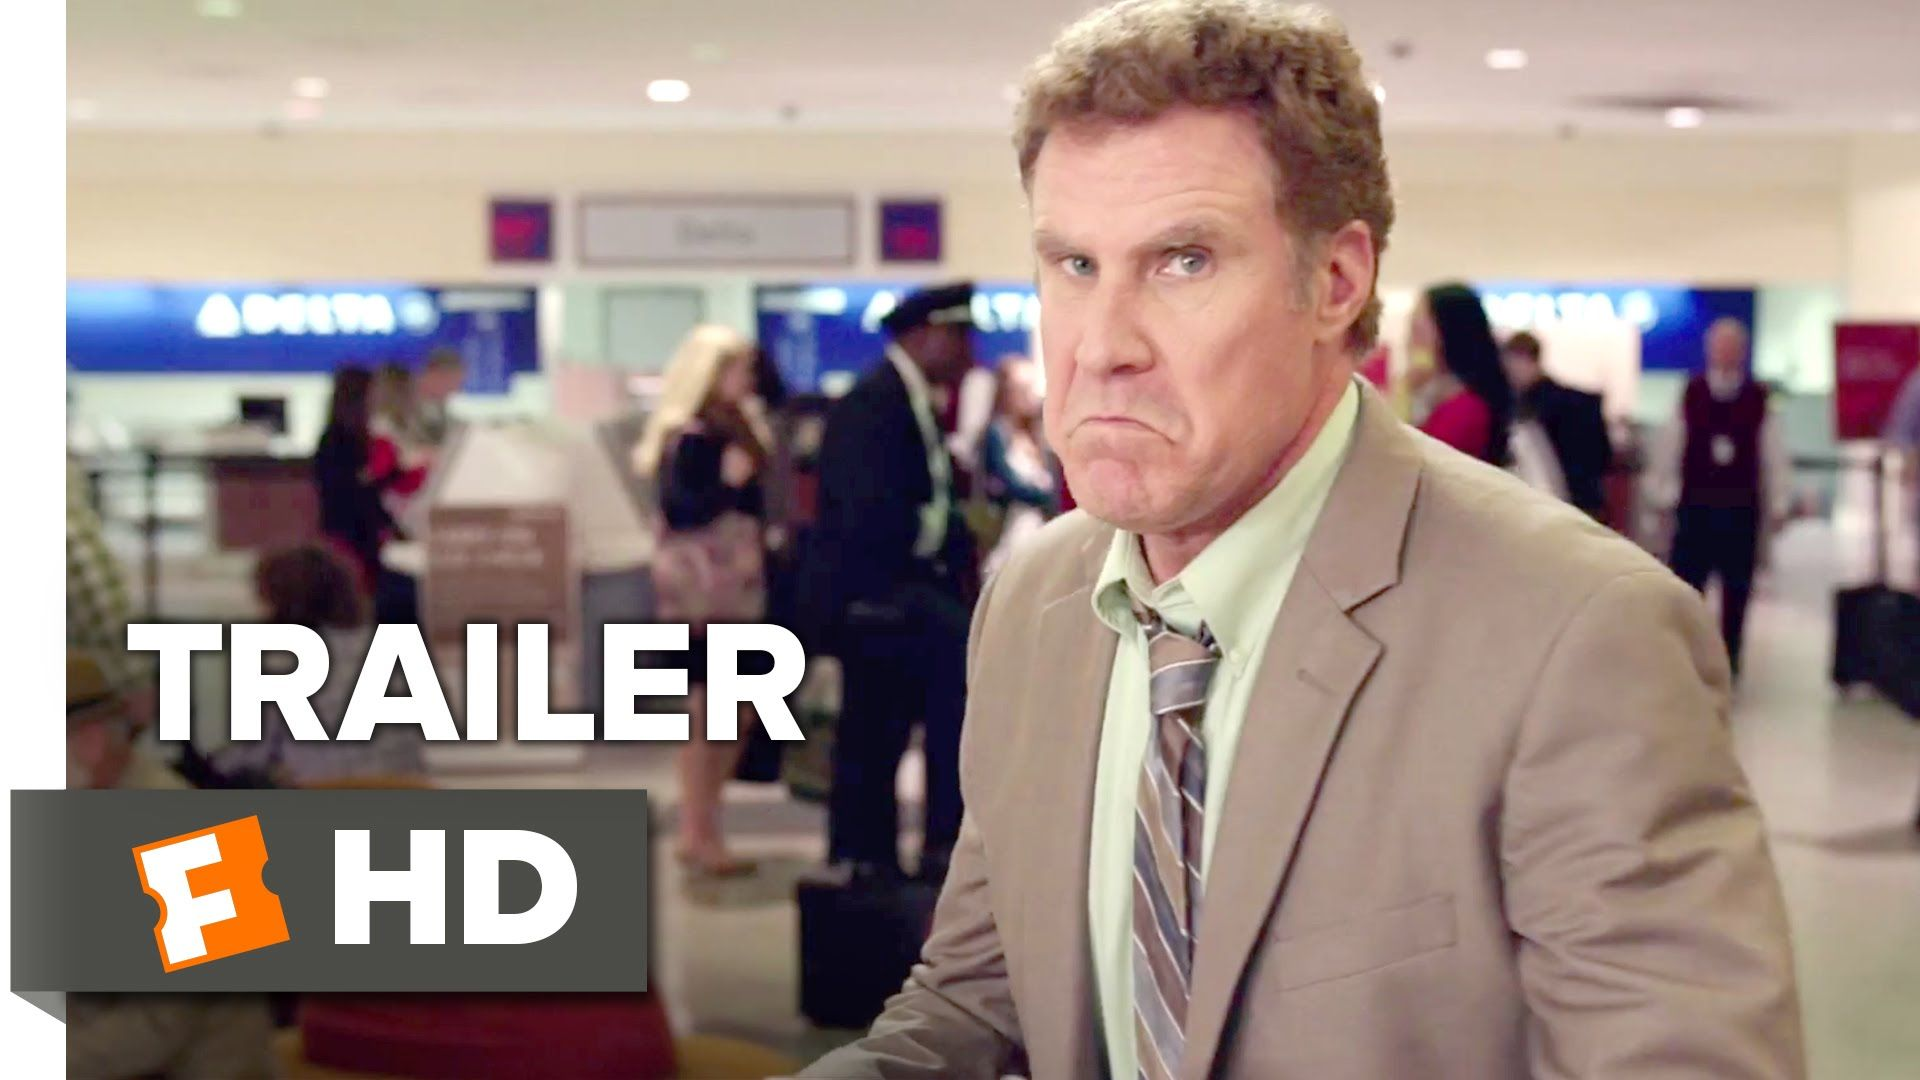 Dilf nerd square off in new trailer for the will ferrell